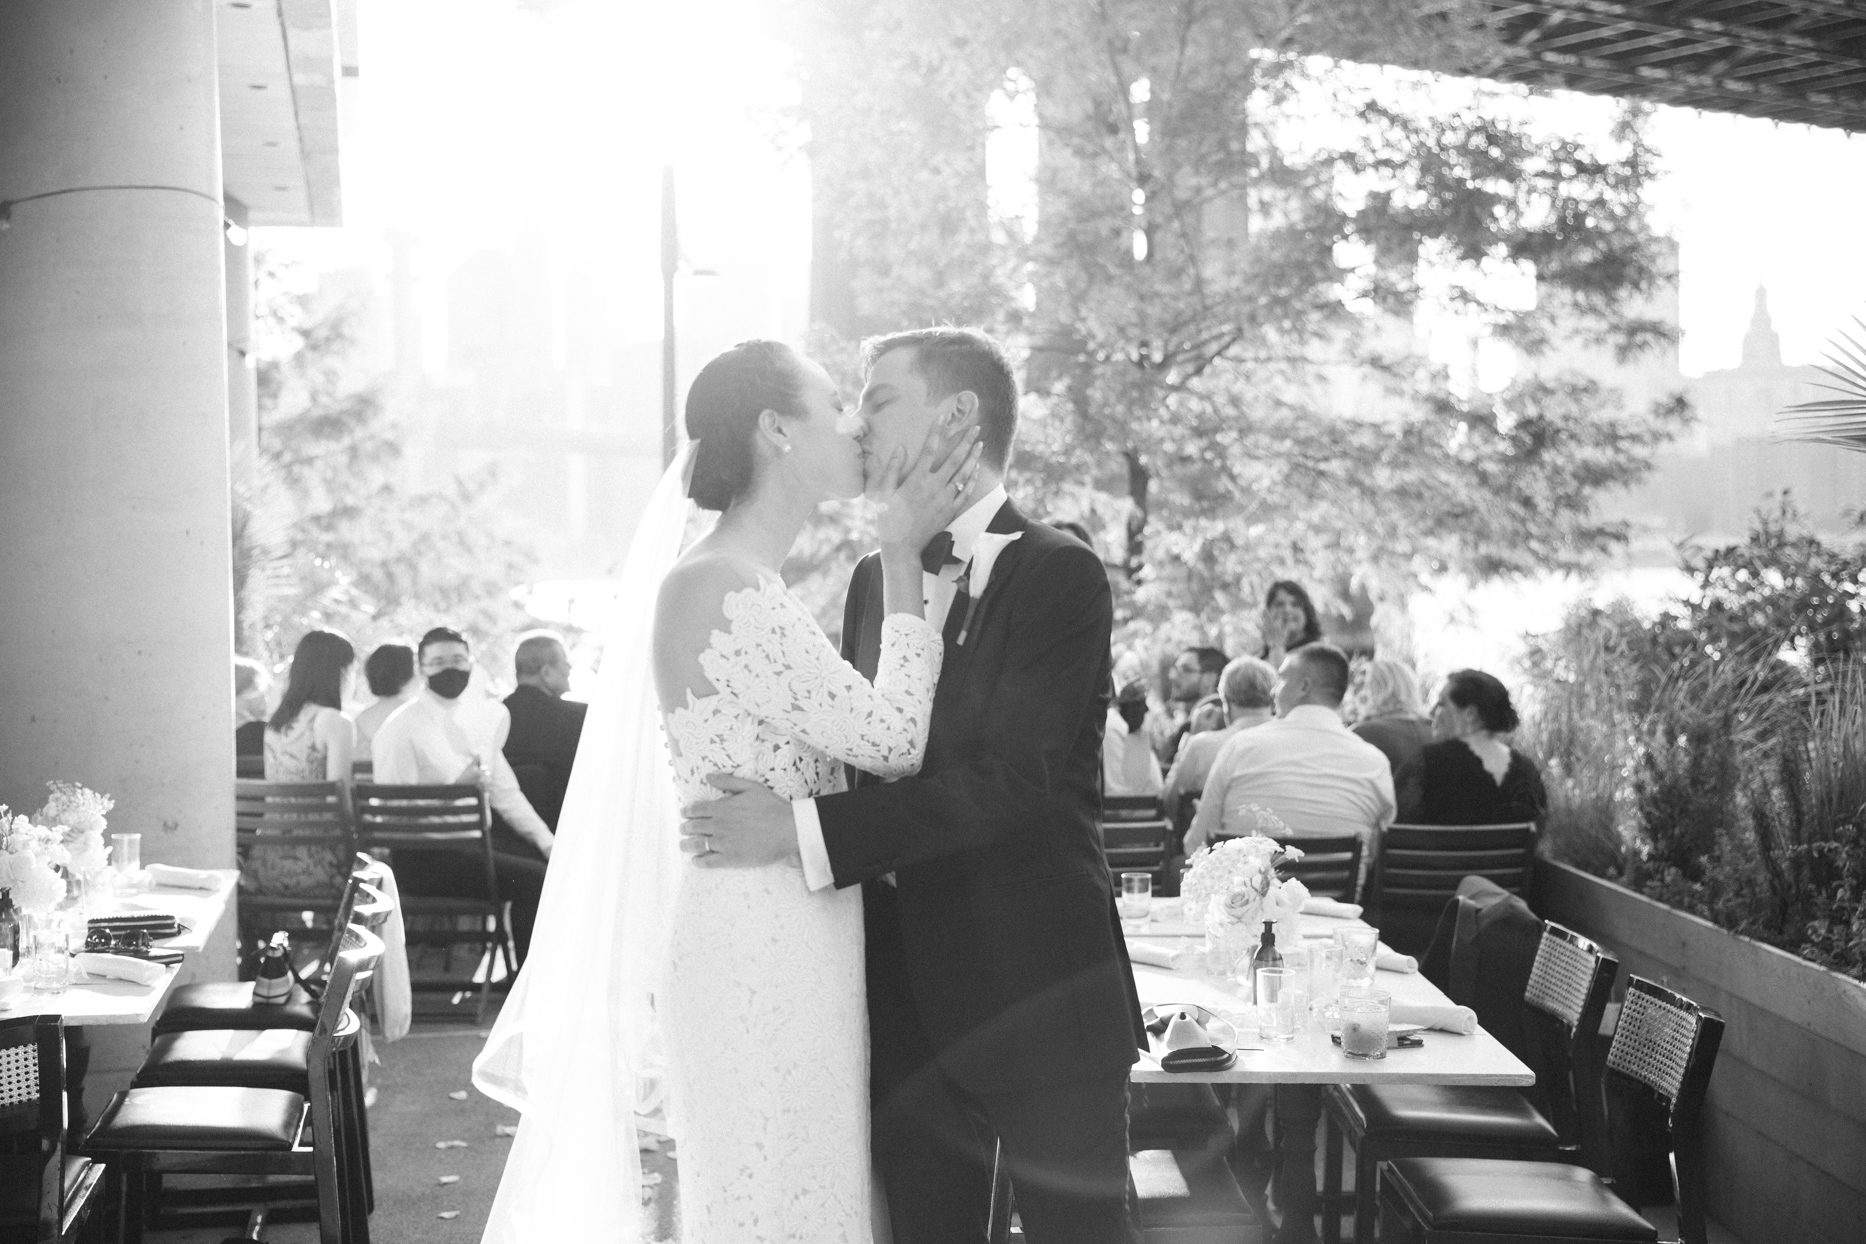 couple kissing with guests sitting in ceremony chairs behind